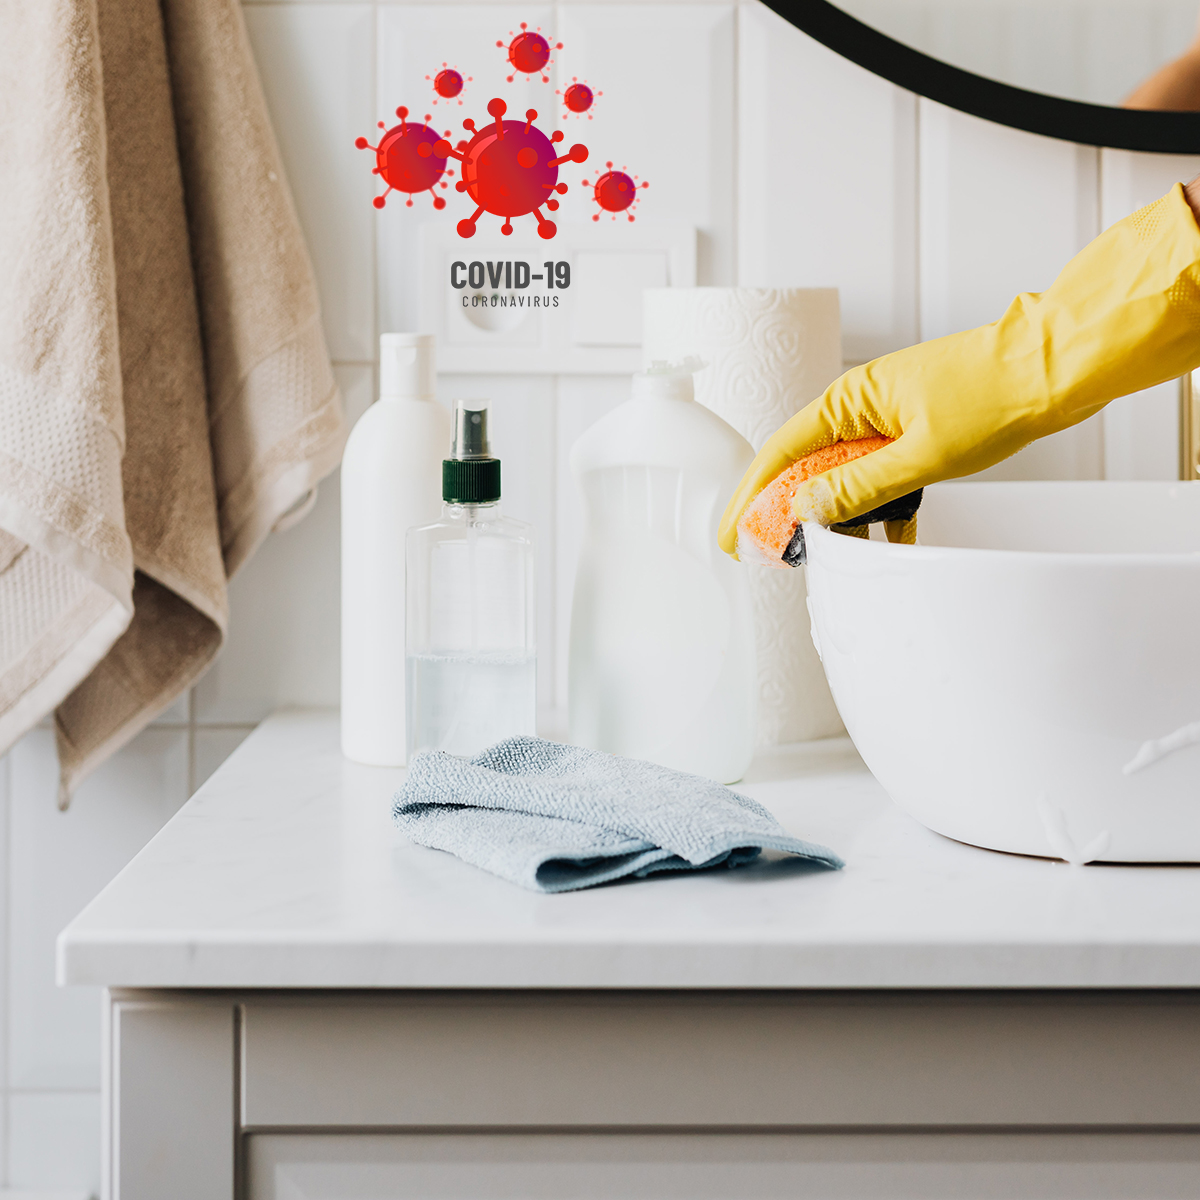 How To Disinfect your Home During Coronavirus Epidemic?